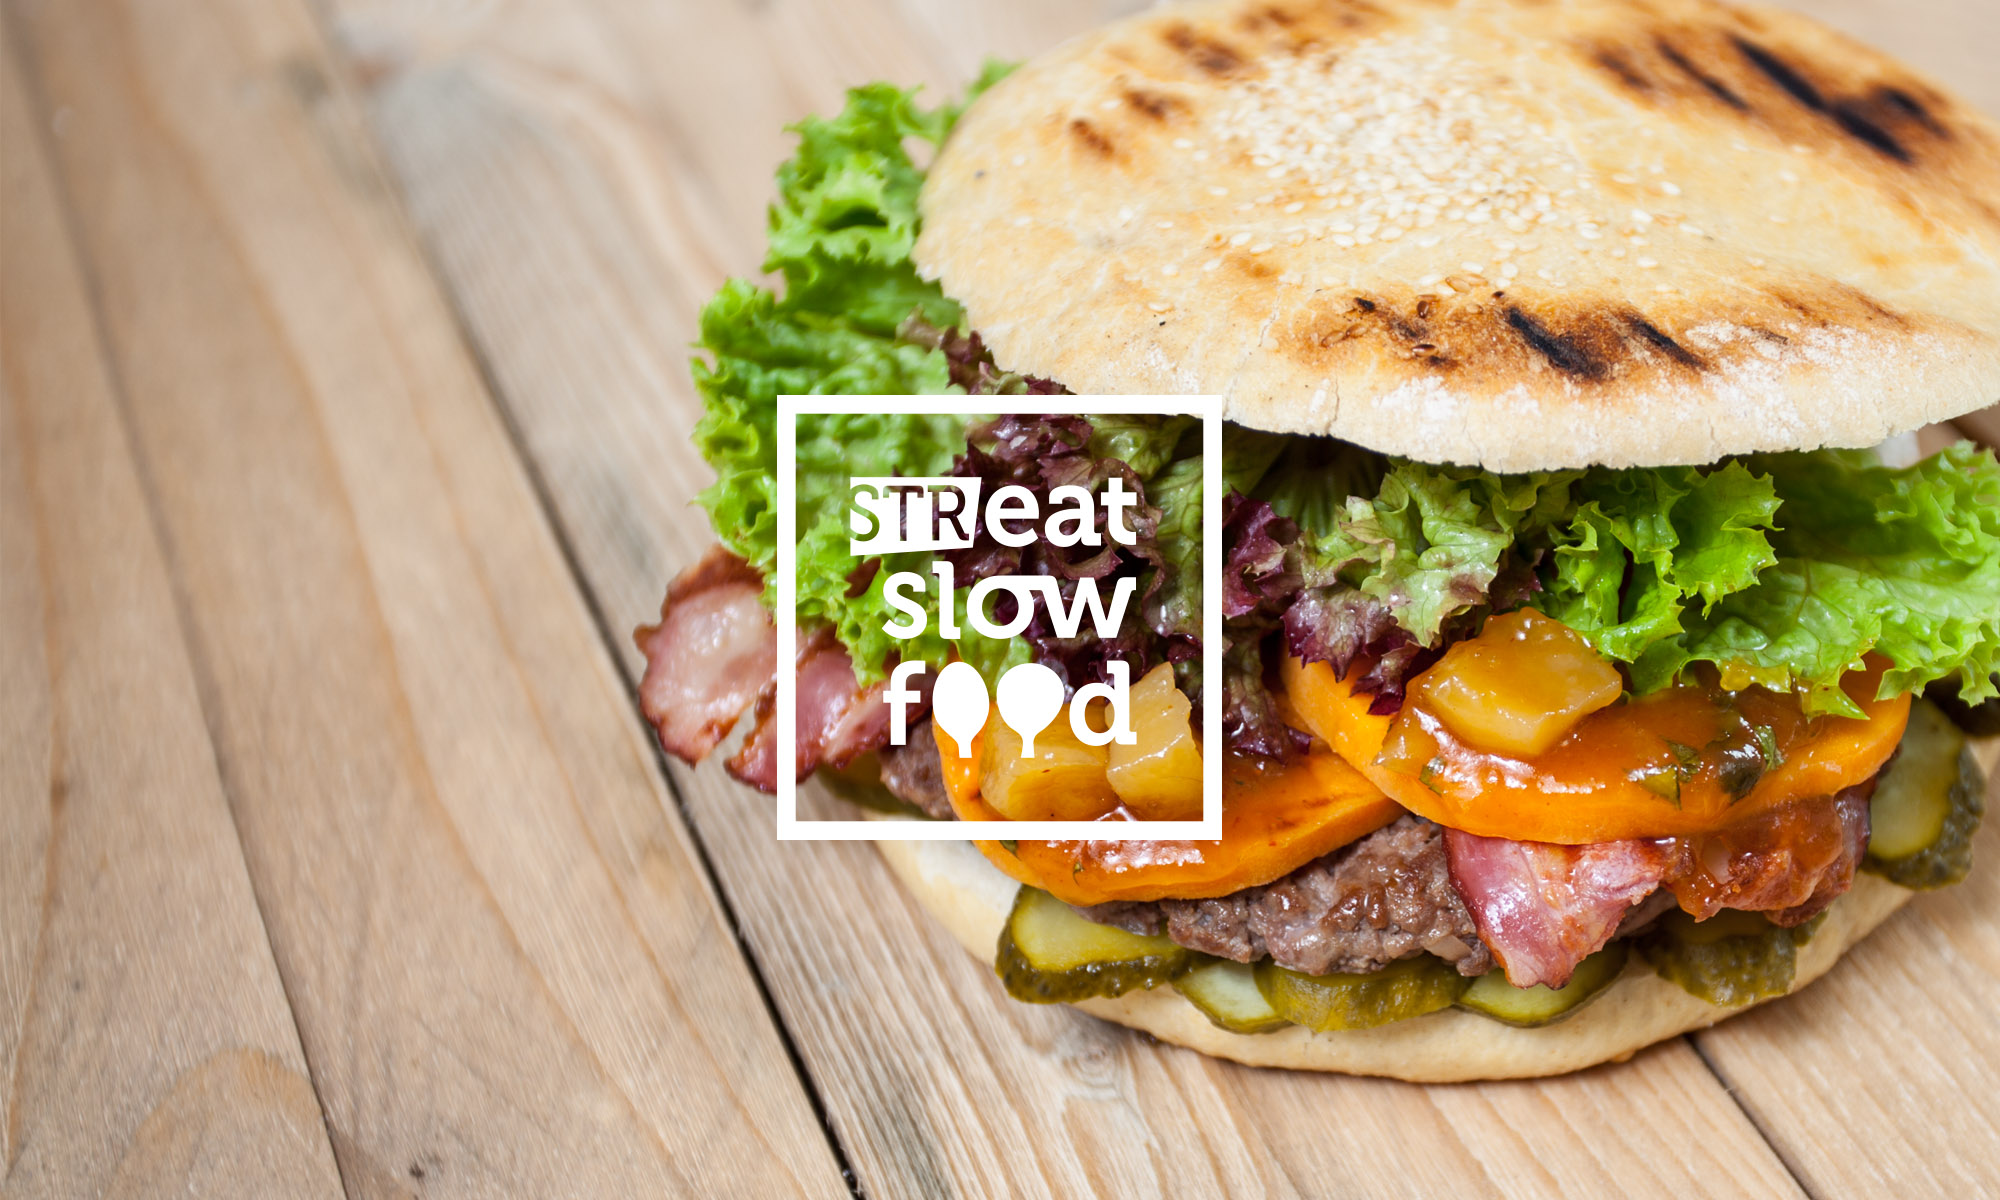 streat_slow_food